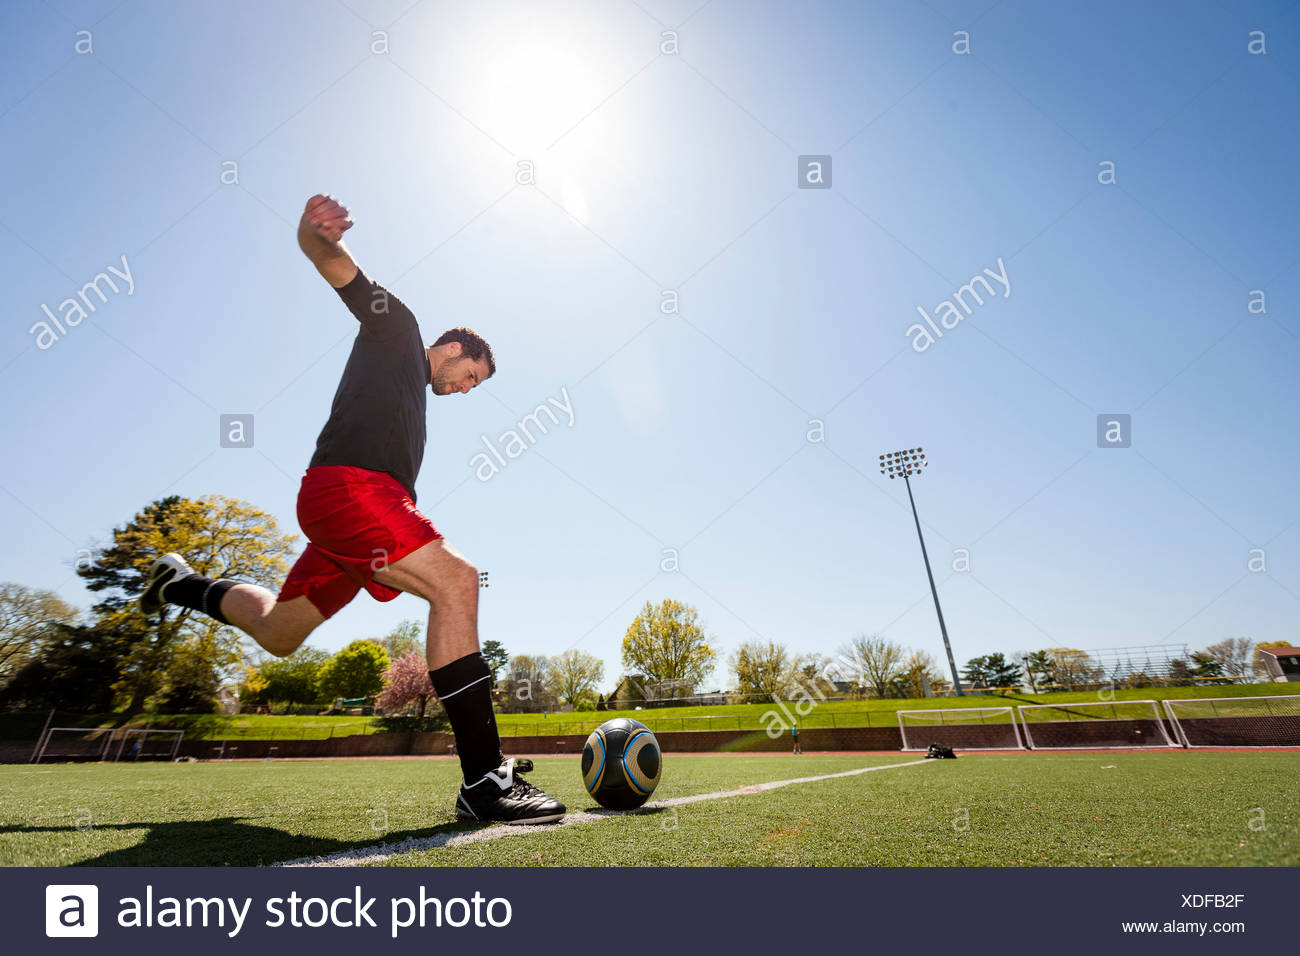 Soccer player taking free kick - Stock Image